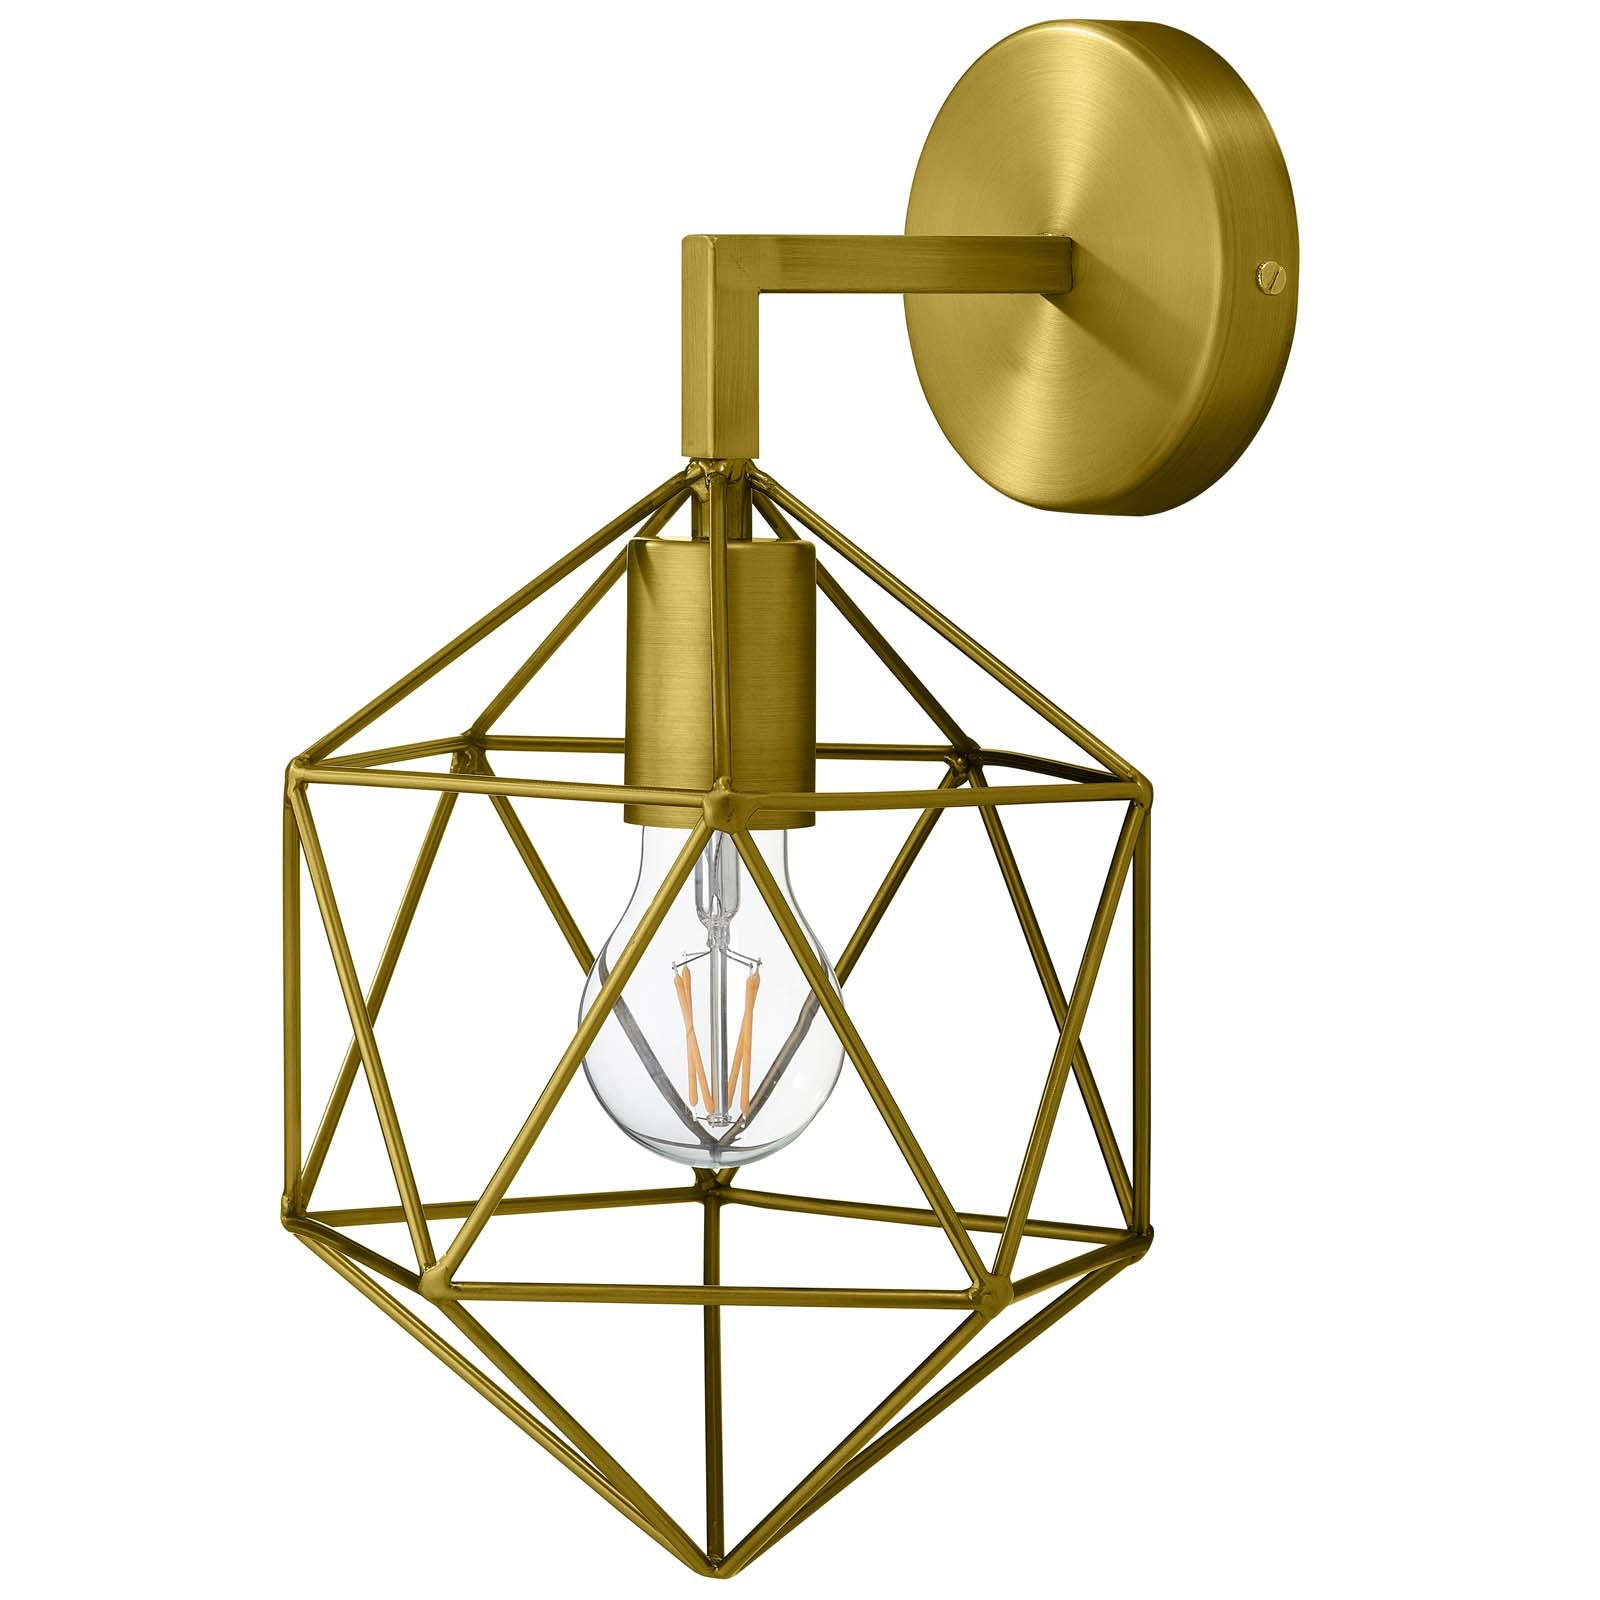 Derive Brass Wall Sconce Light Fixture